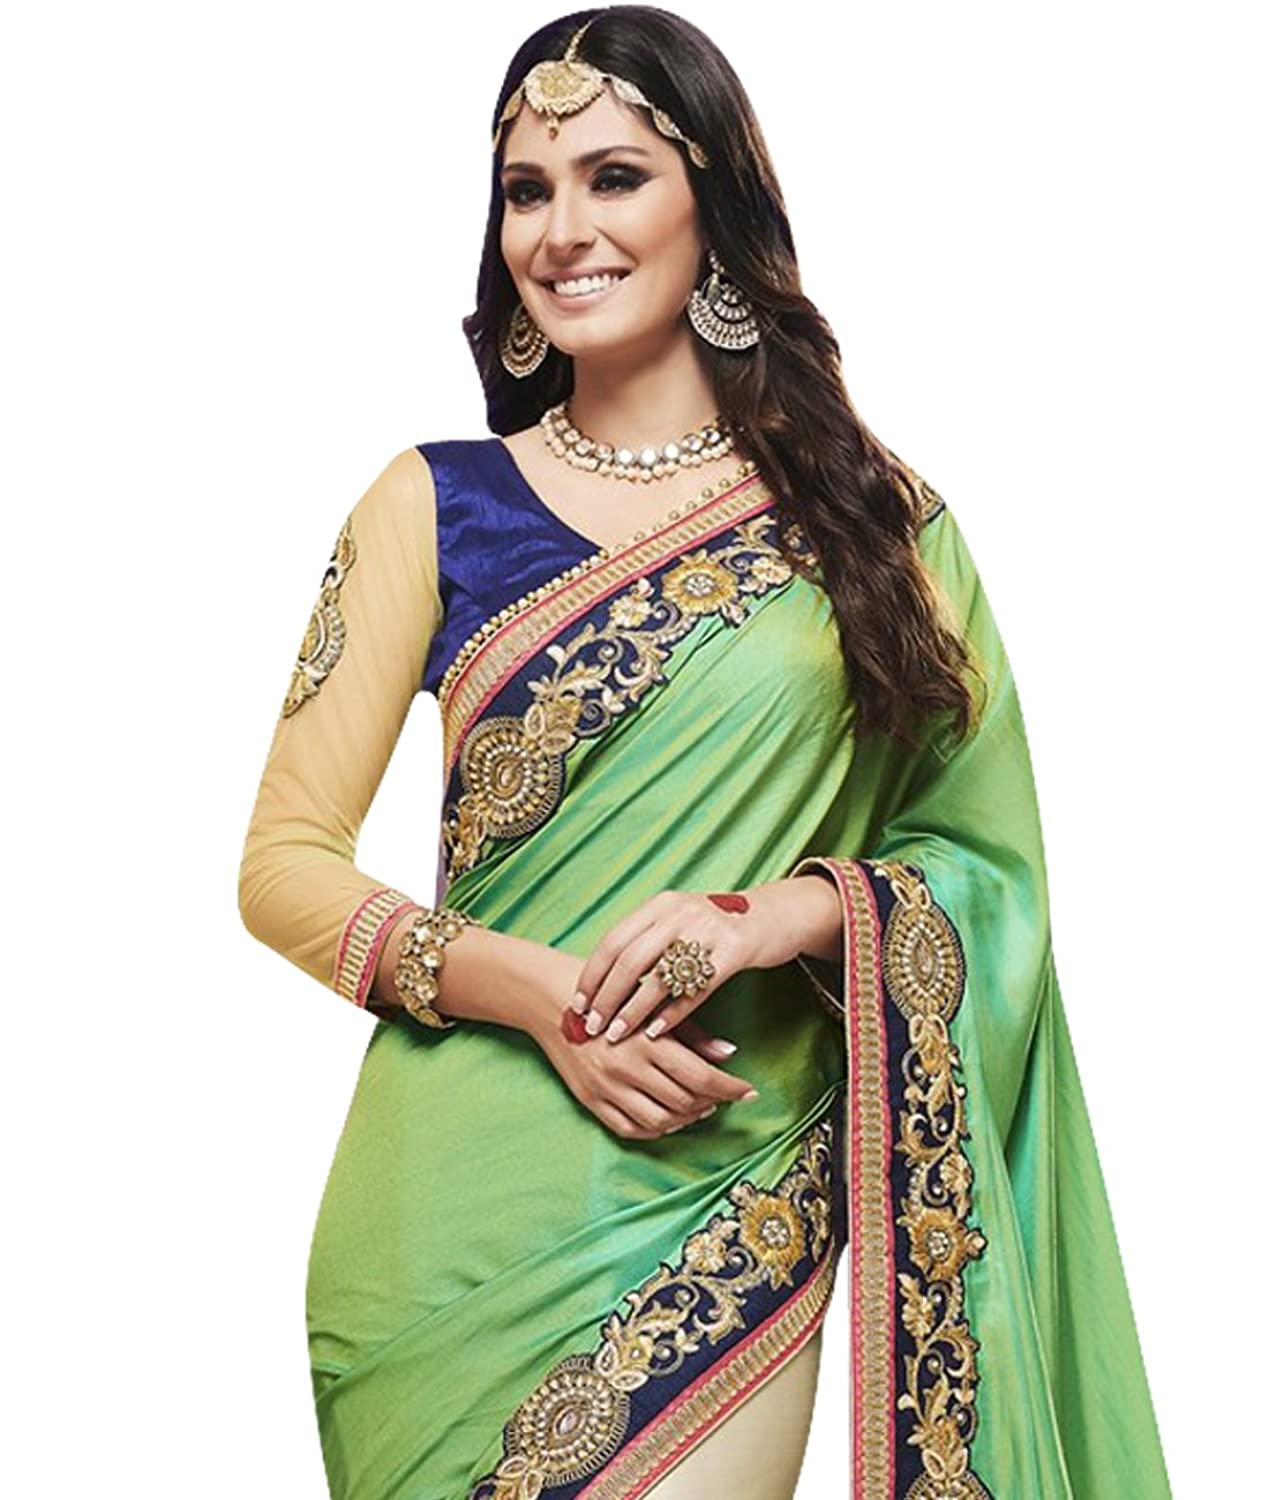 Indian Ethnic Faux Satin Chiffon Light Green and Beige Bridal and Wedding Saree